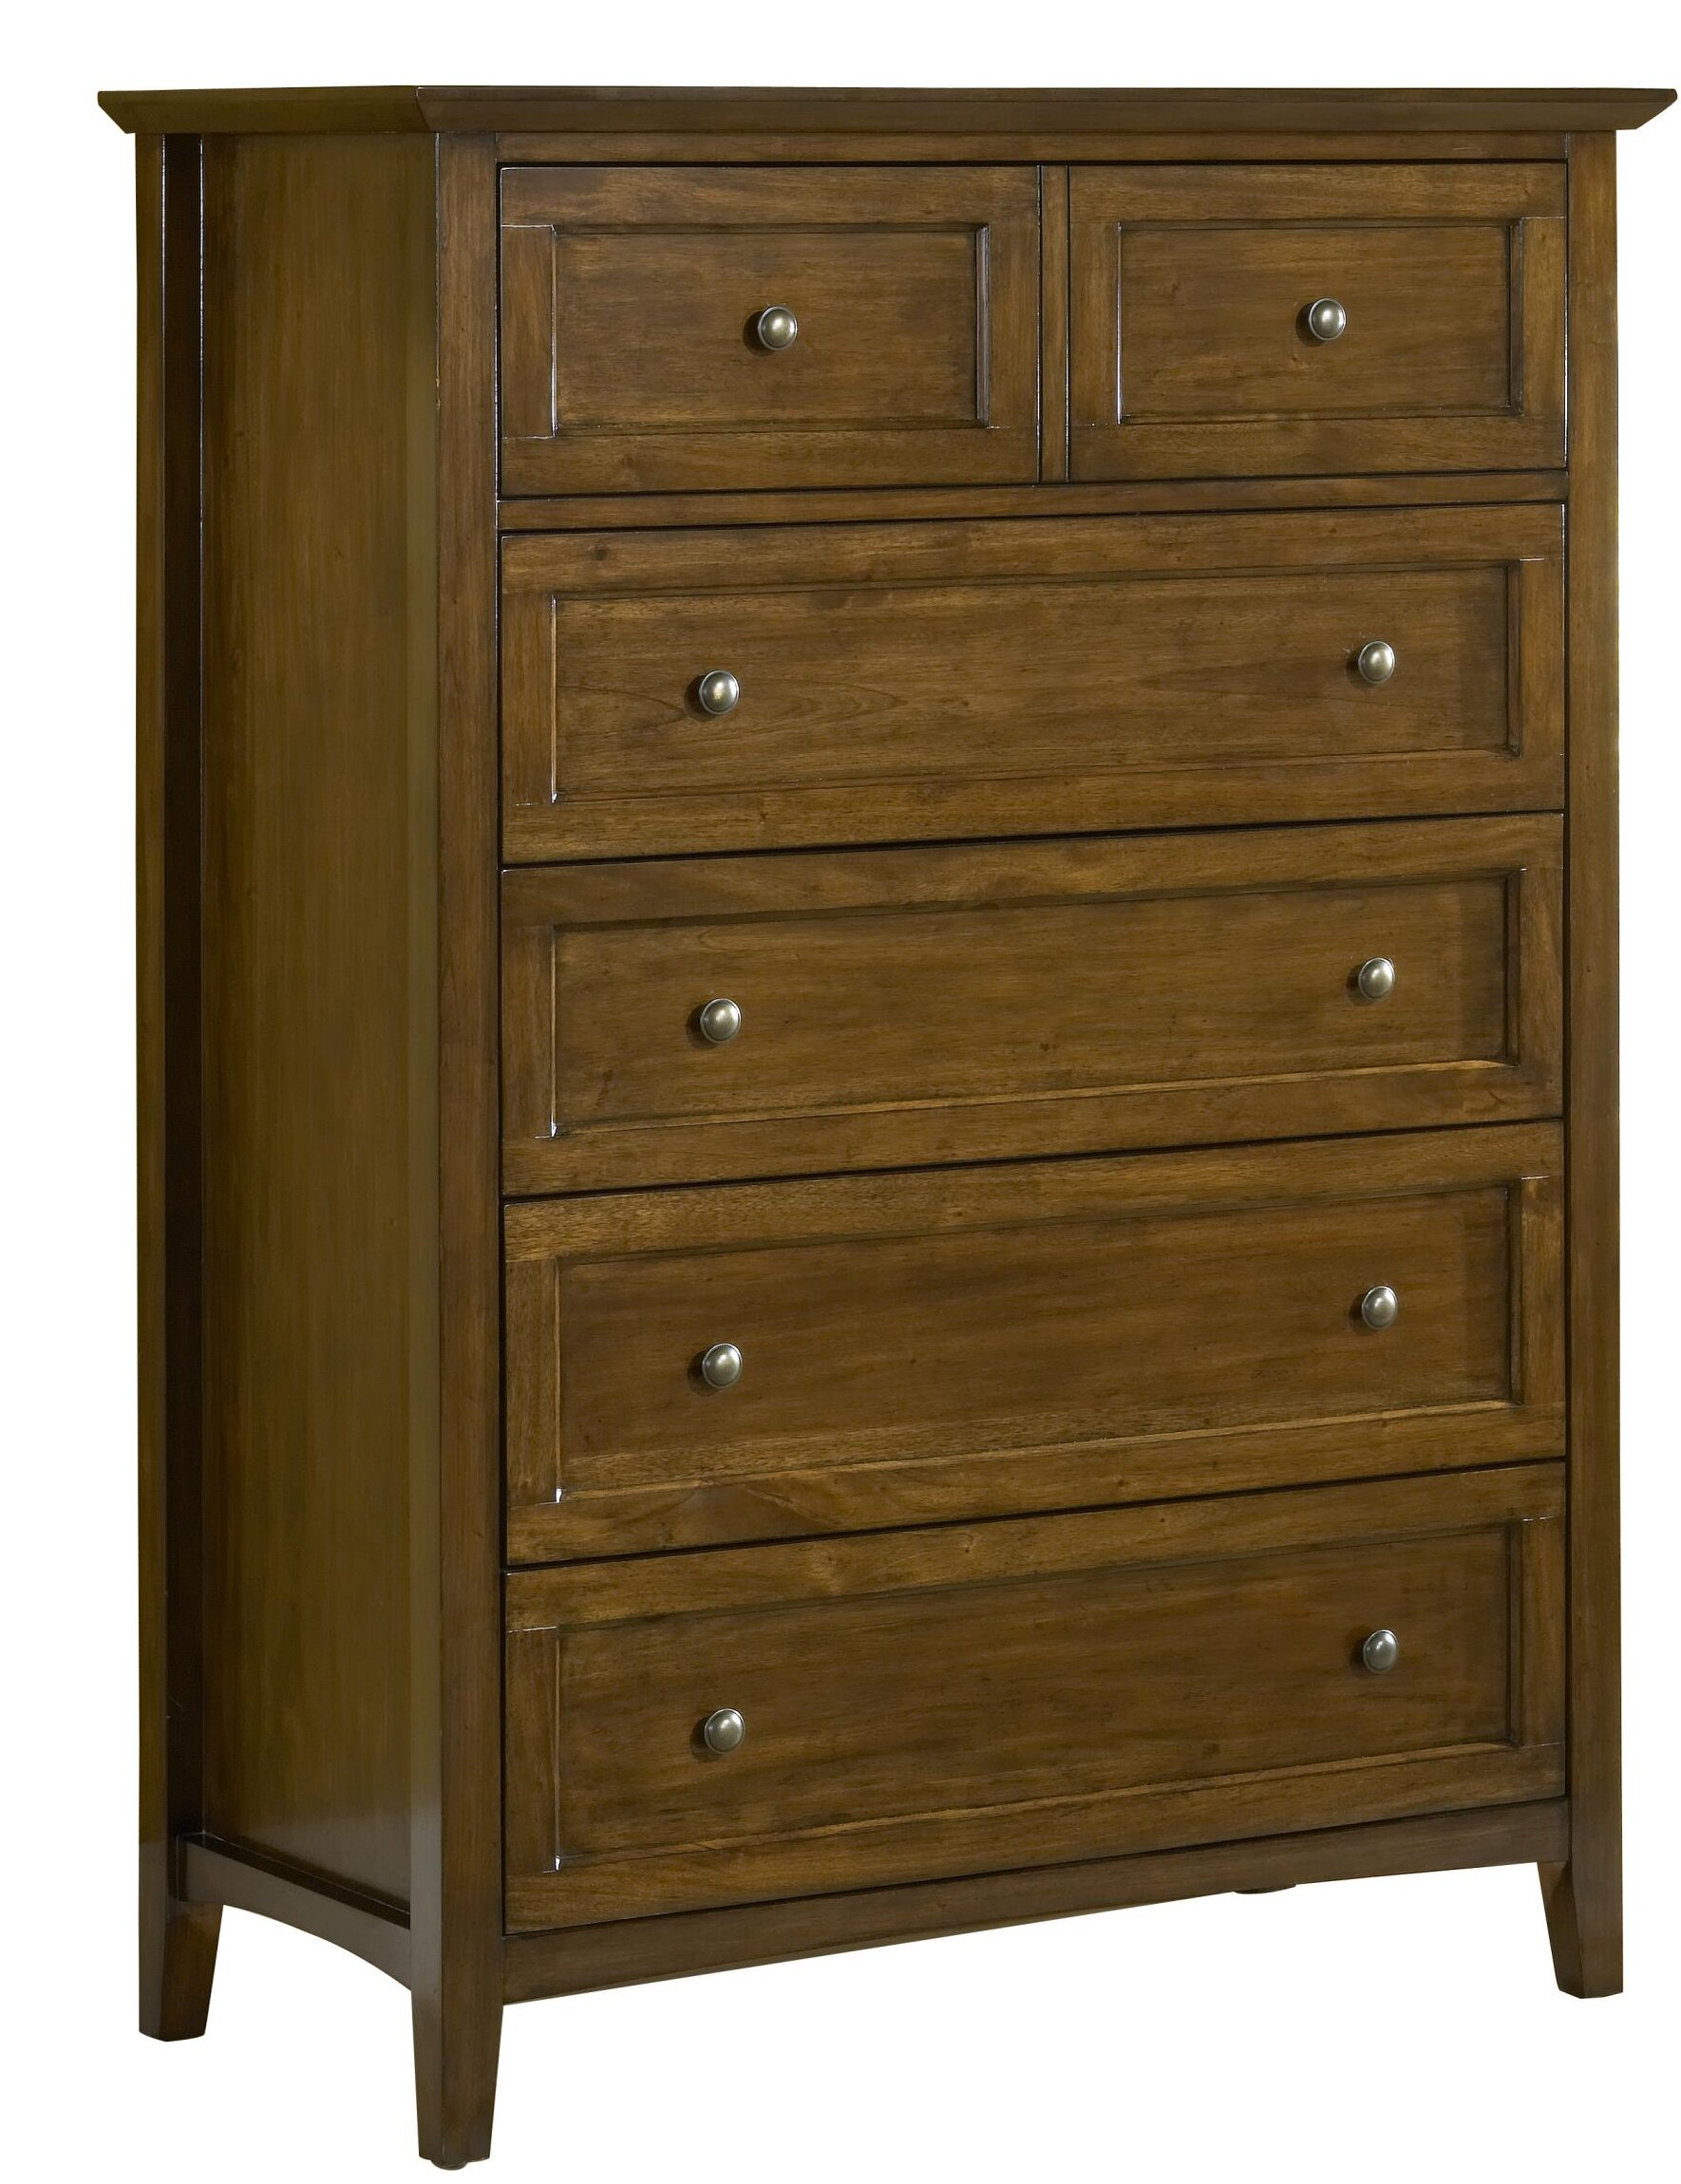 Metal Tall Dressers Chests You Ll Love In 2021 Wayfair